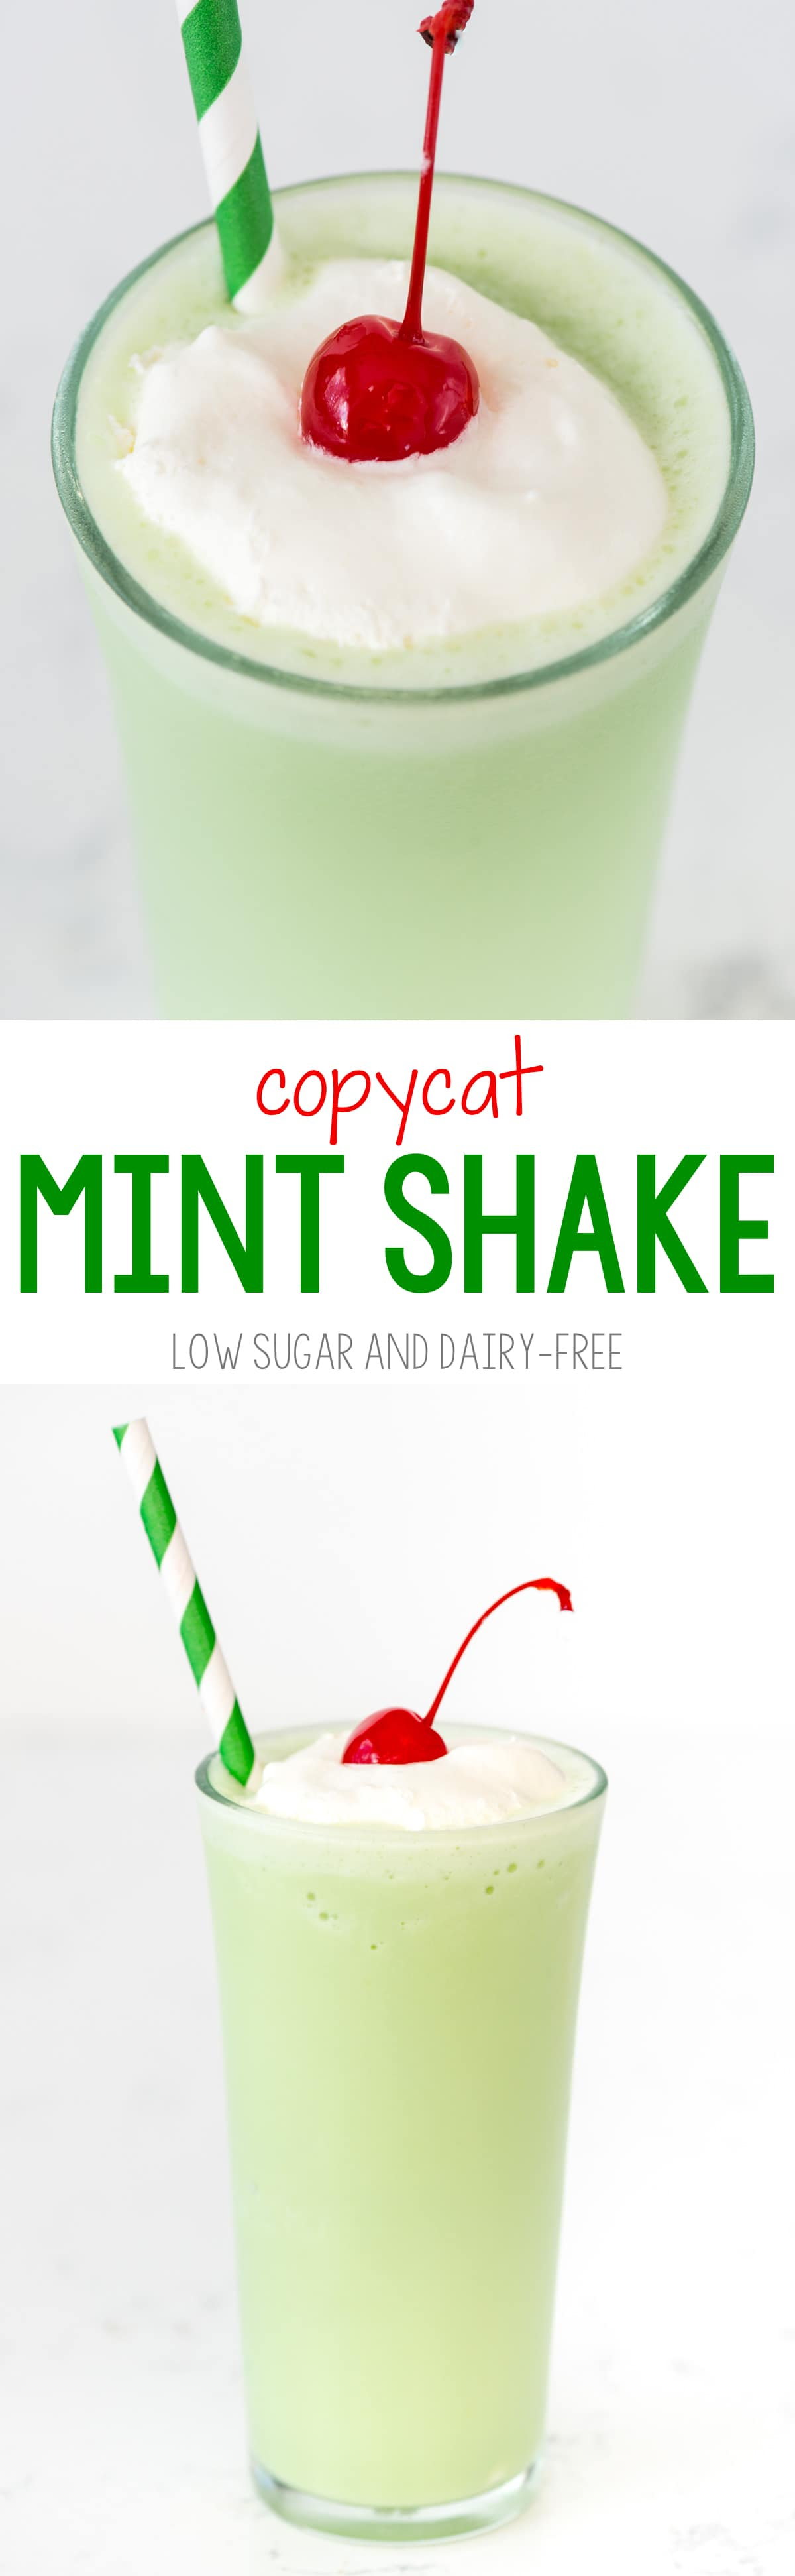 Mint Shake - this popular copycat shake recipe is made dairy-free and lower sugar! It's an EASY milkshake recipe that is perfect for mint lovers.